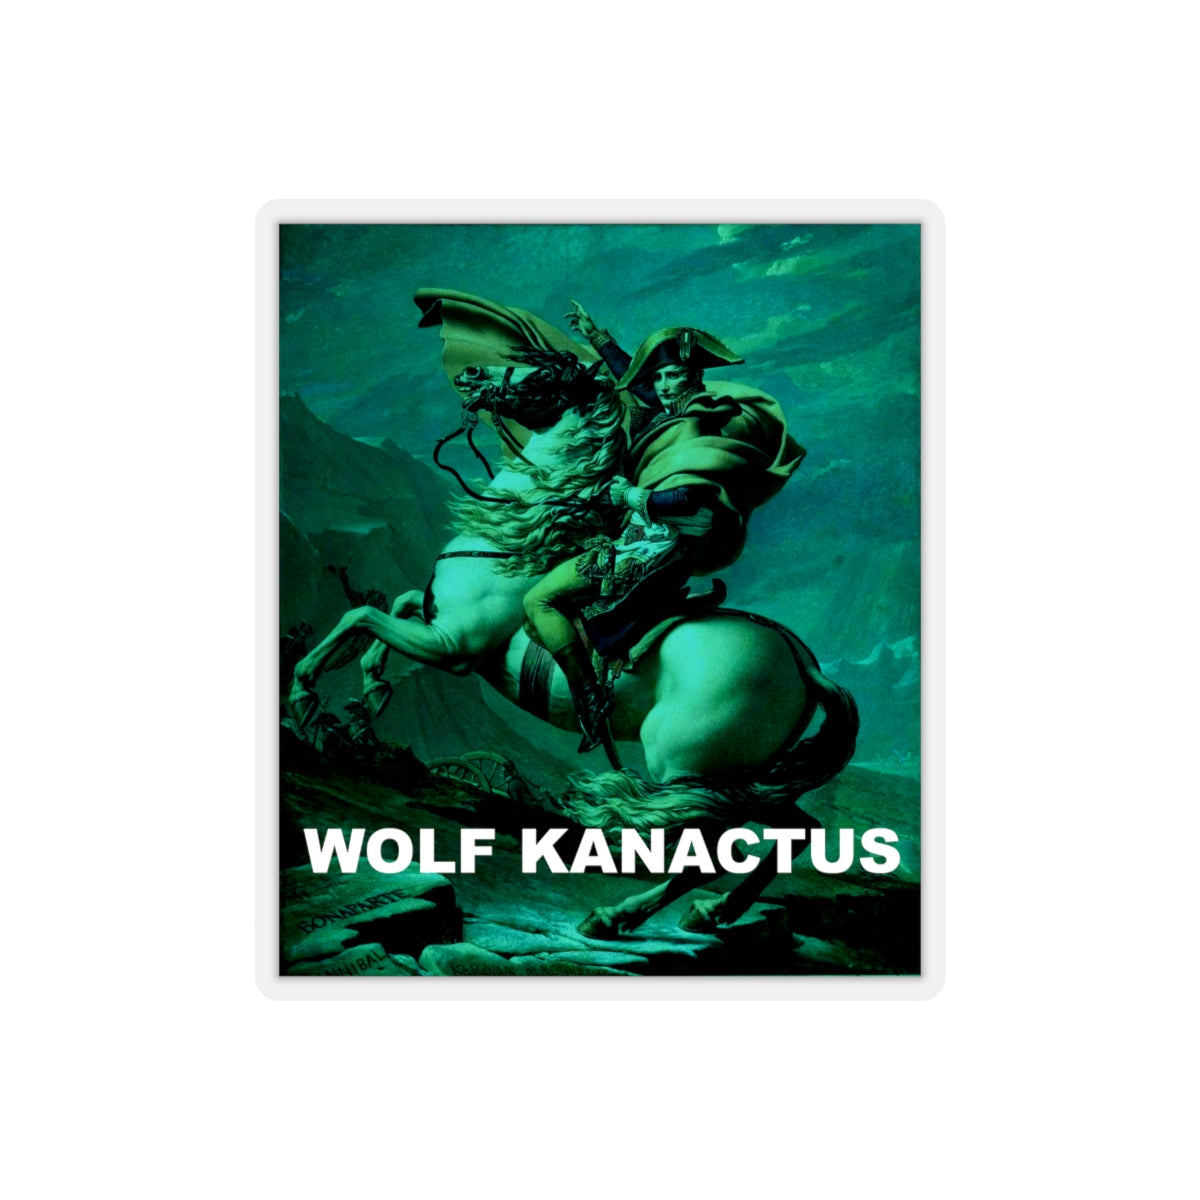 Kiss-Cut Stickers- written Wolf Kanactus with napoleon - Wolf Kanactus